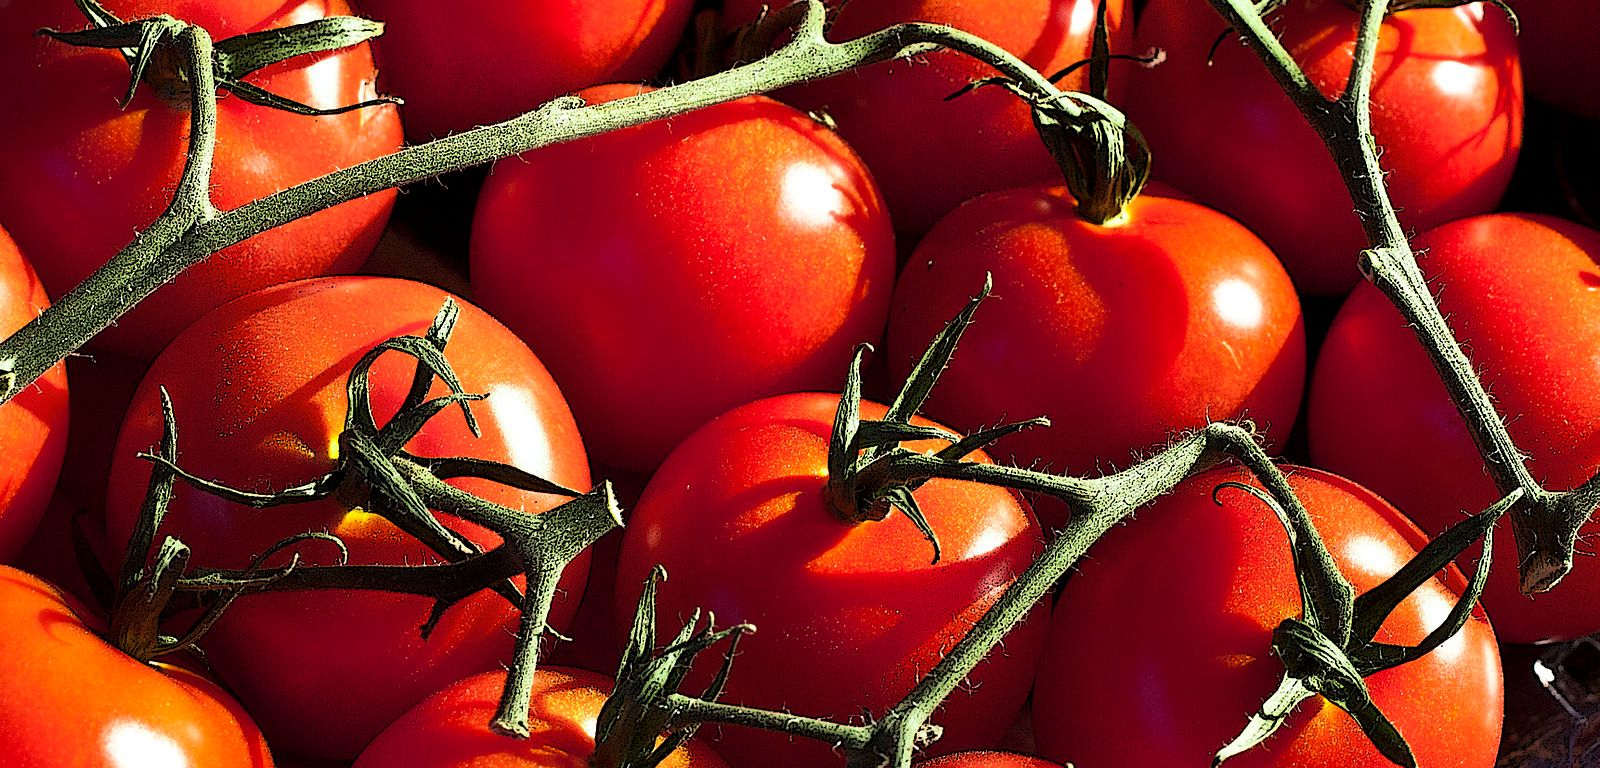 Figure 1: Researchers use chemistry and genetics to investigate what makes the best tasting tomato to improve the tasteless modern commercialized varieties.